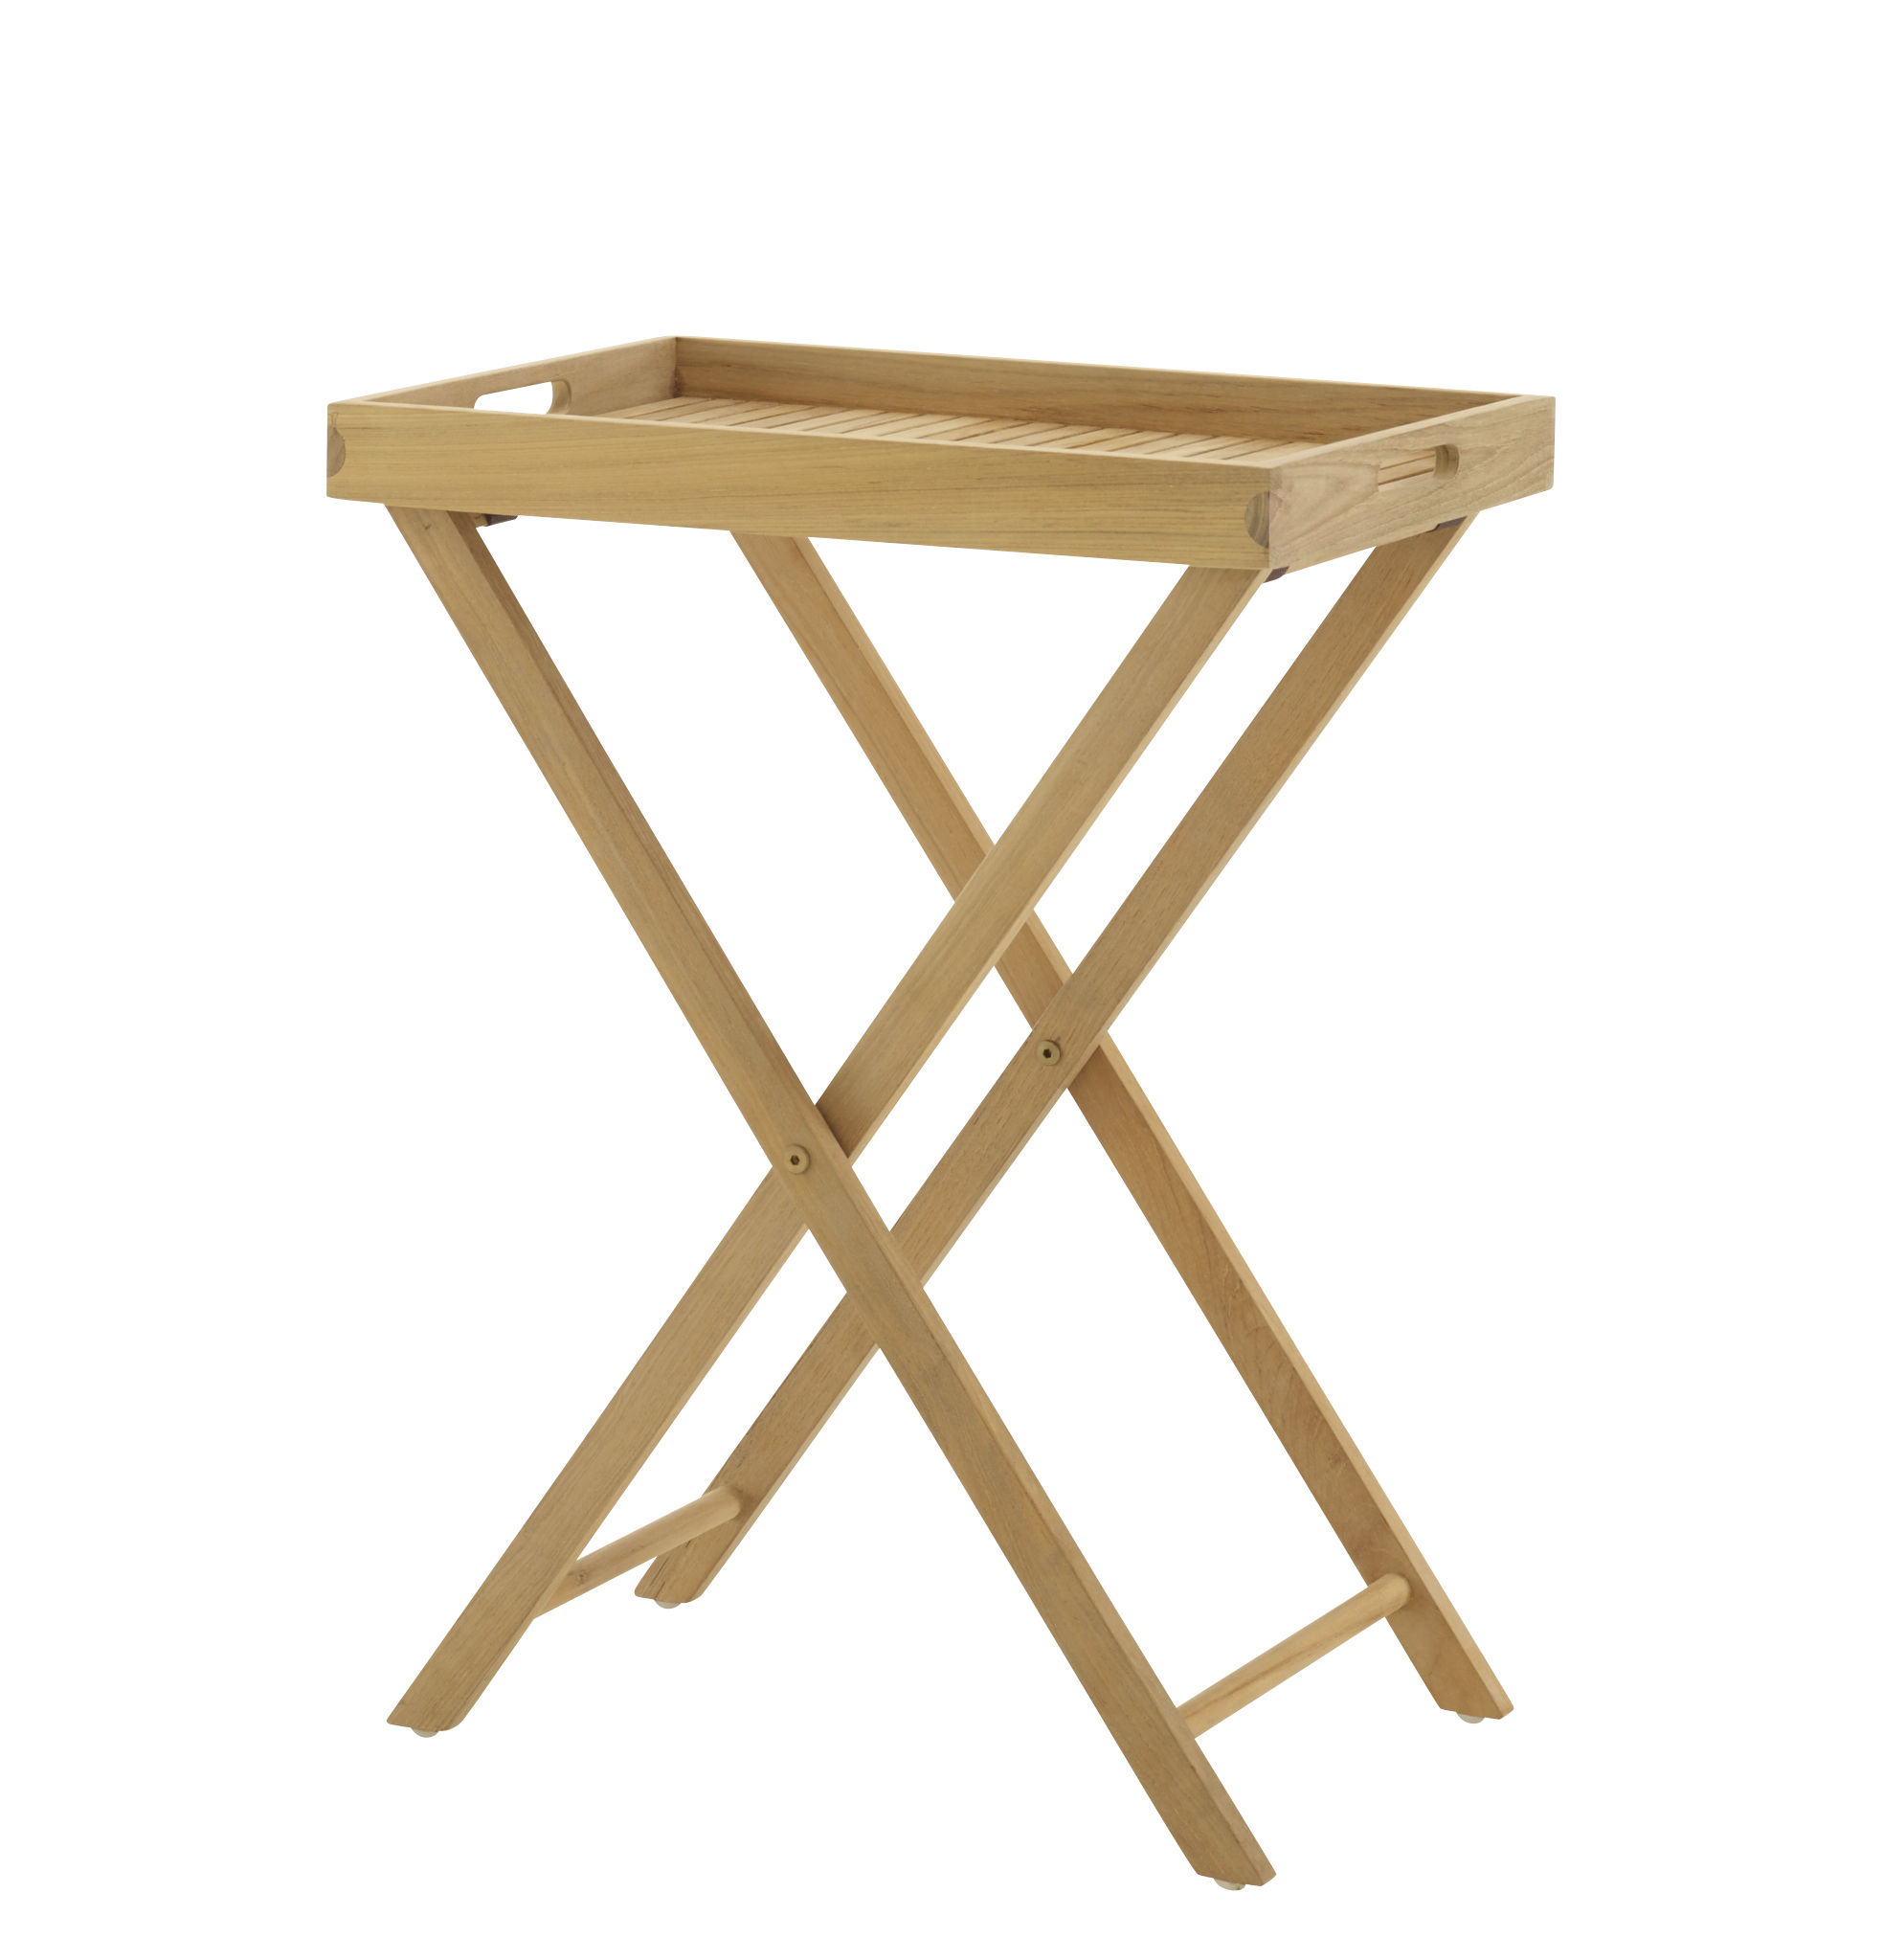 Mobilier - Tables basses - Table d'appoint pliable Azteck / Plateau amovible - 57 x 38 cm - Cinna - Teck - Teck massif